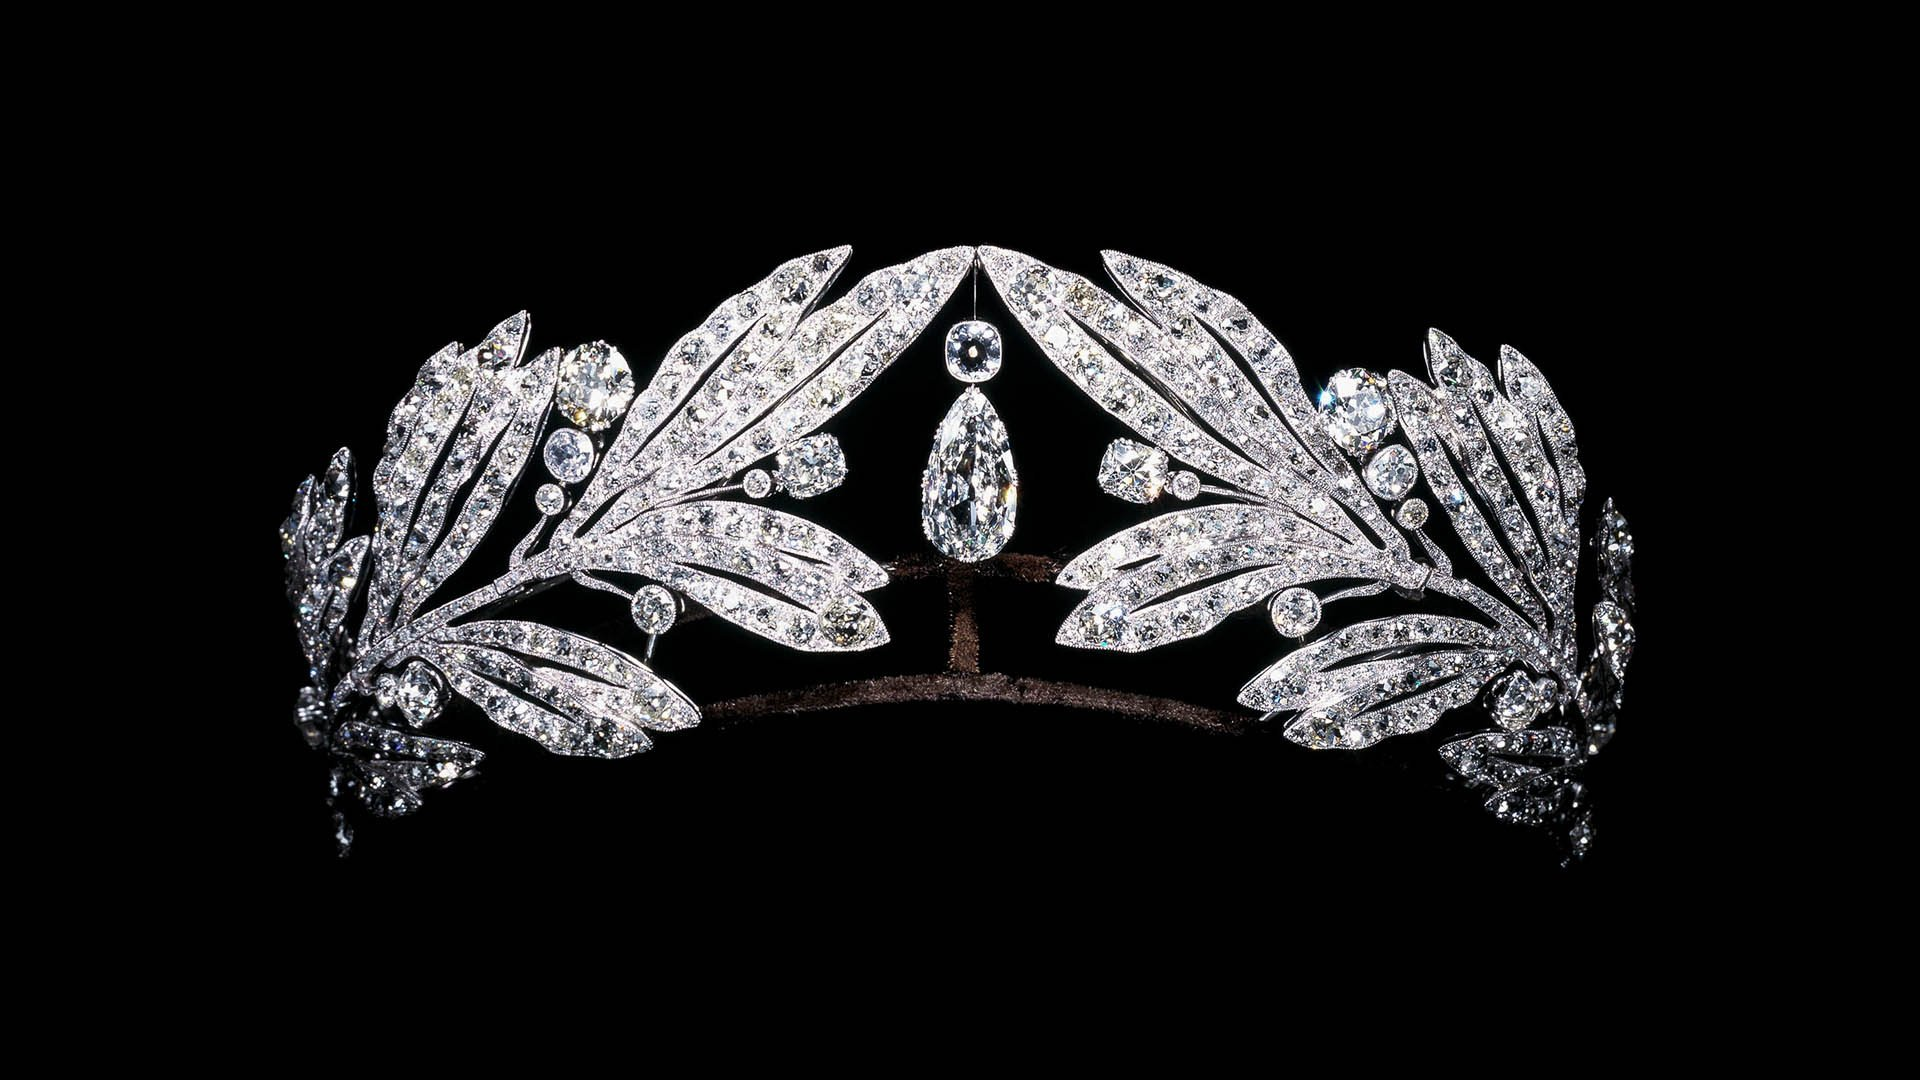 an antique 1920s jewelry cartier tiara